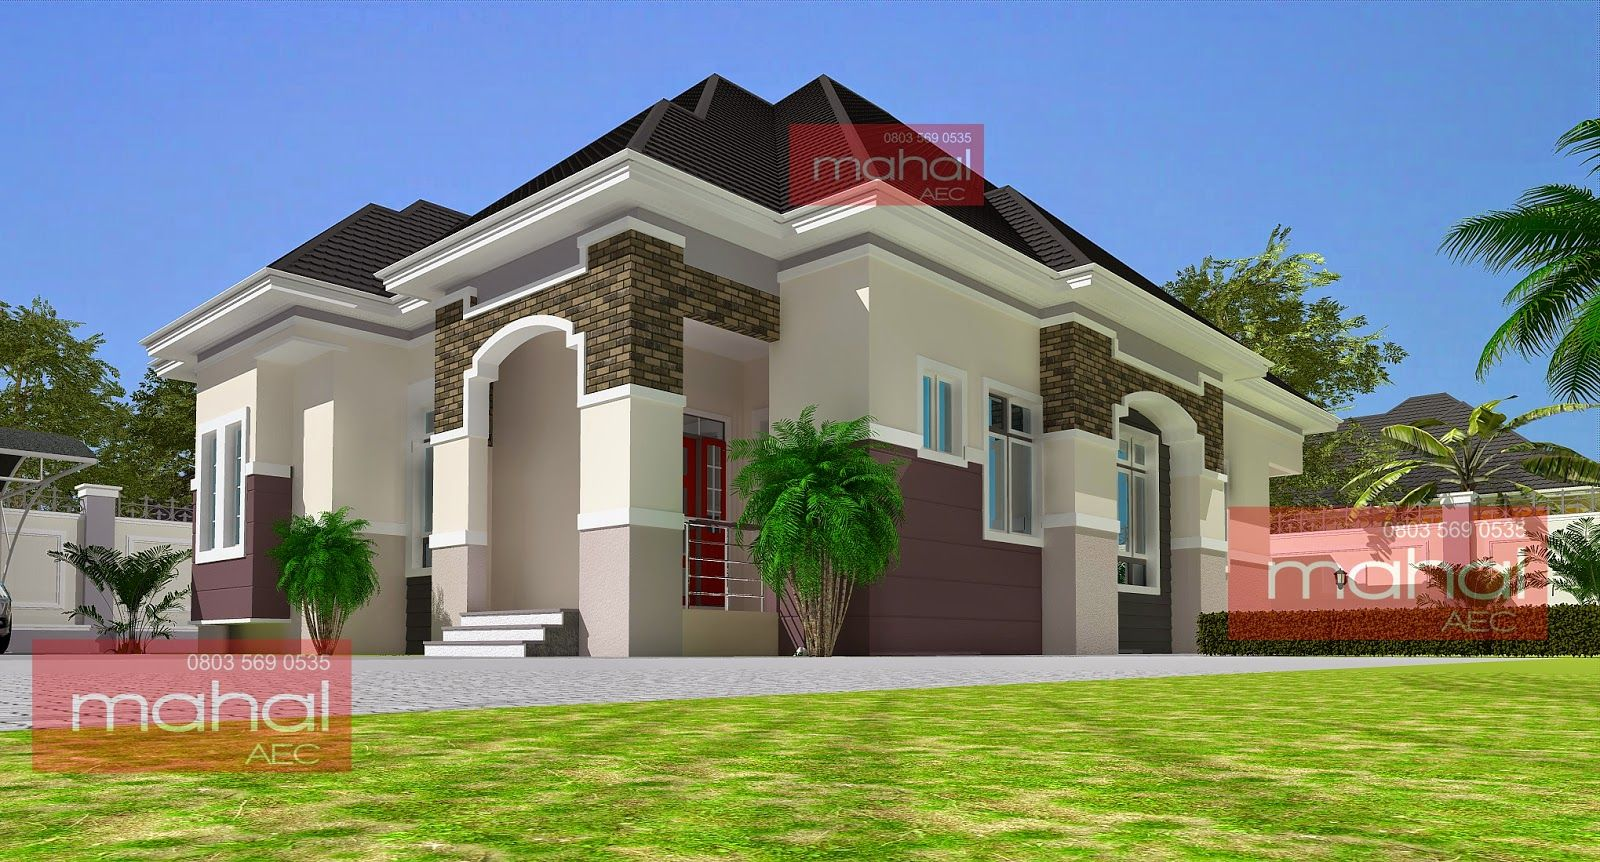 Contemporary Nigerian Residential Architecture 3 Bedroom Bungalow Amadi Flats Duplex House Design Bungalow Design Duplex House Plans